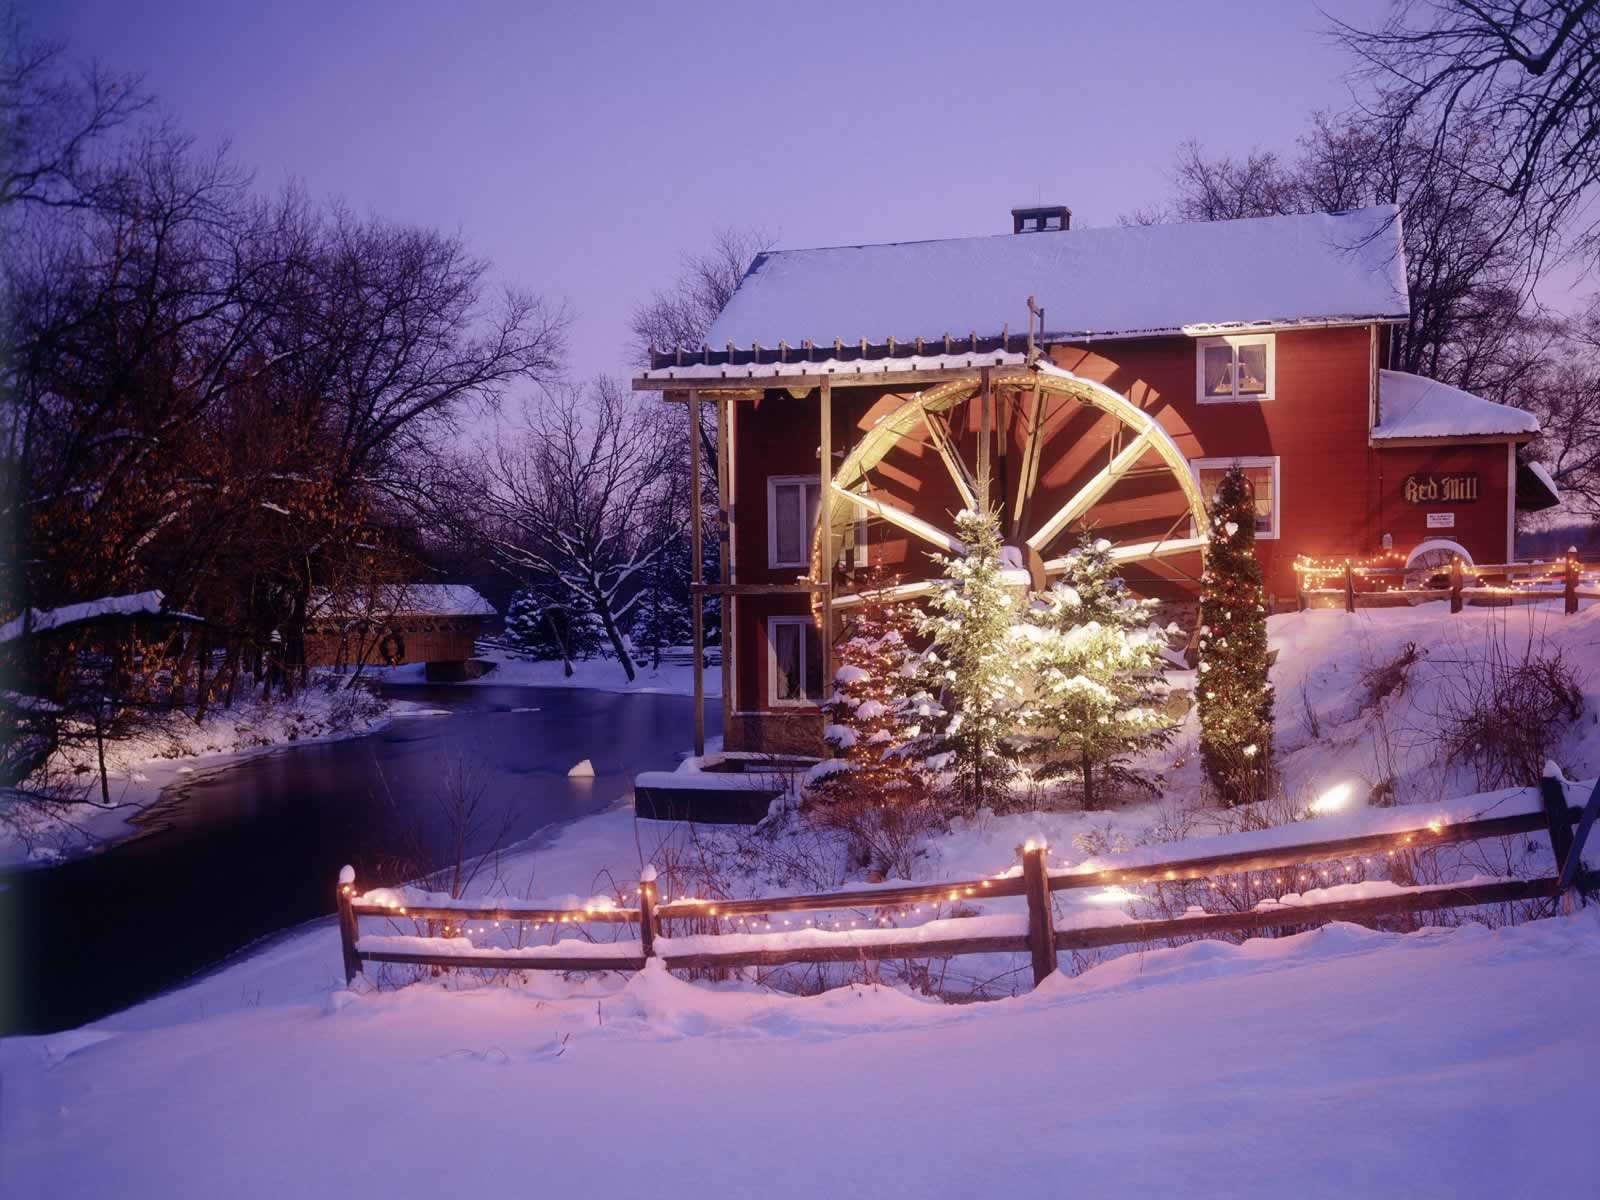 Red mill at christmas parfreyville wisconsin christmas for Christmas landscape images